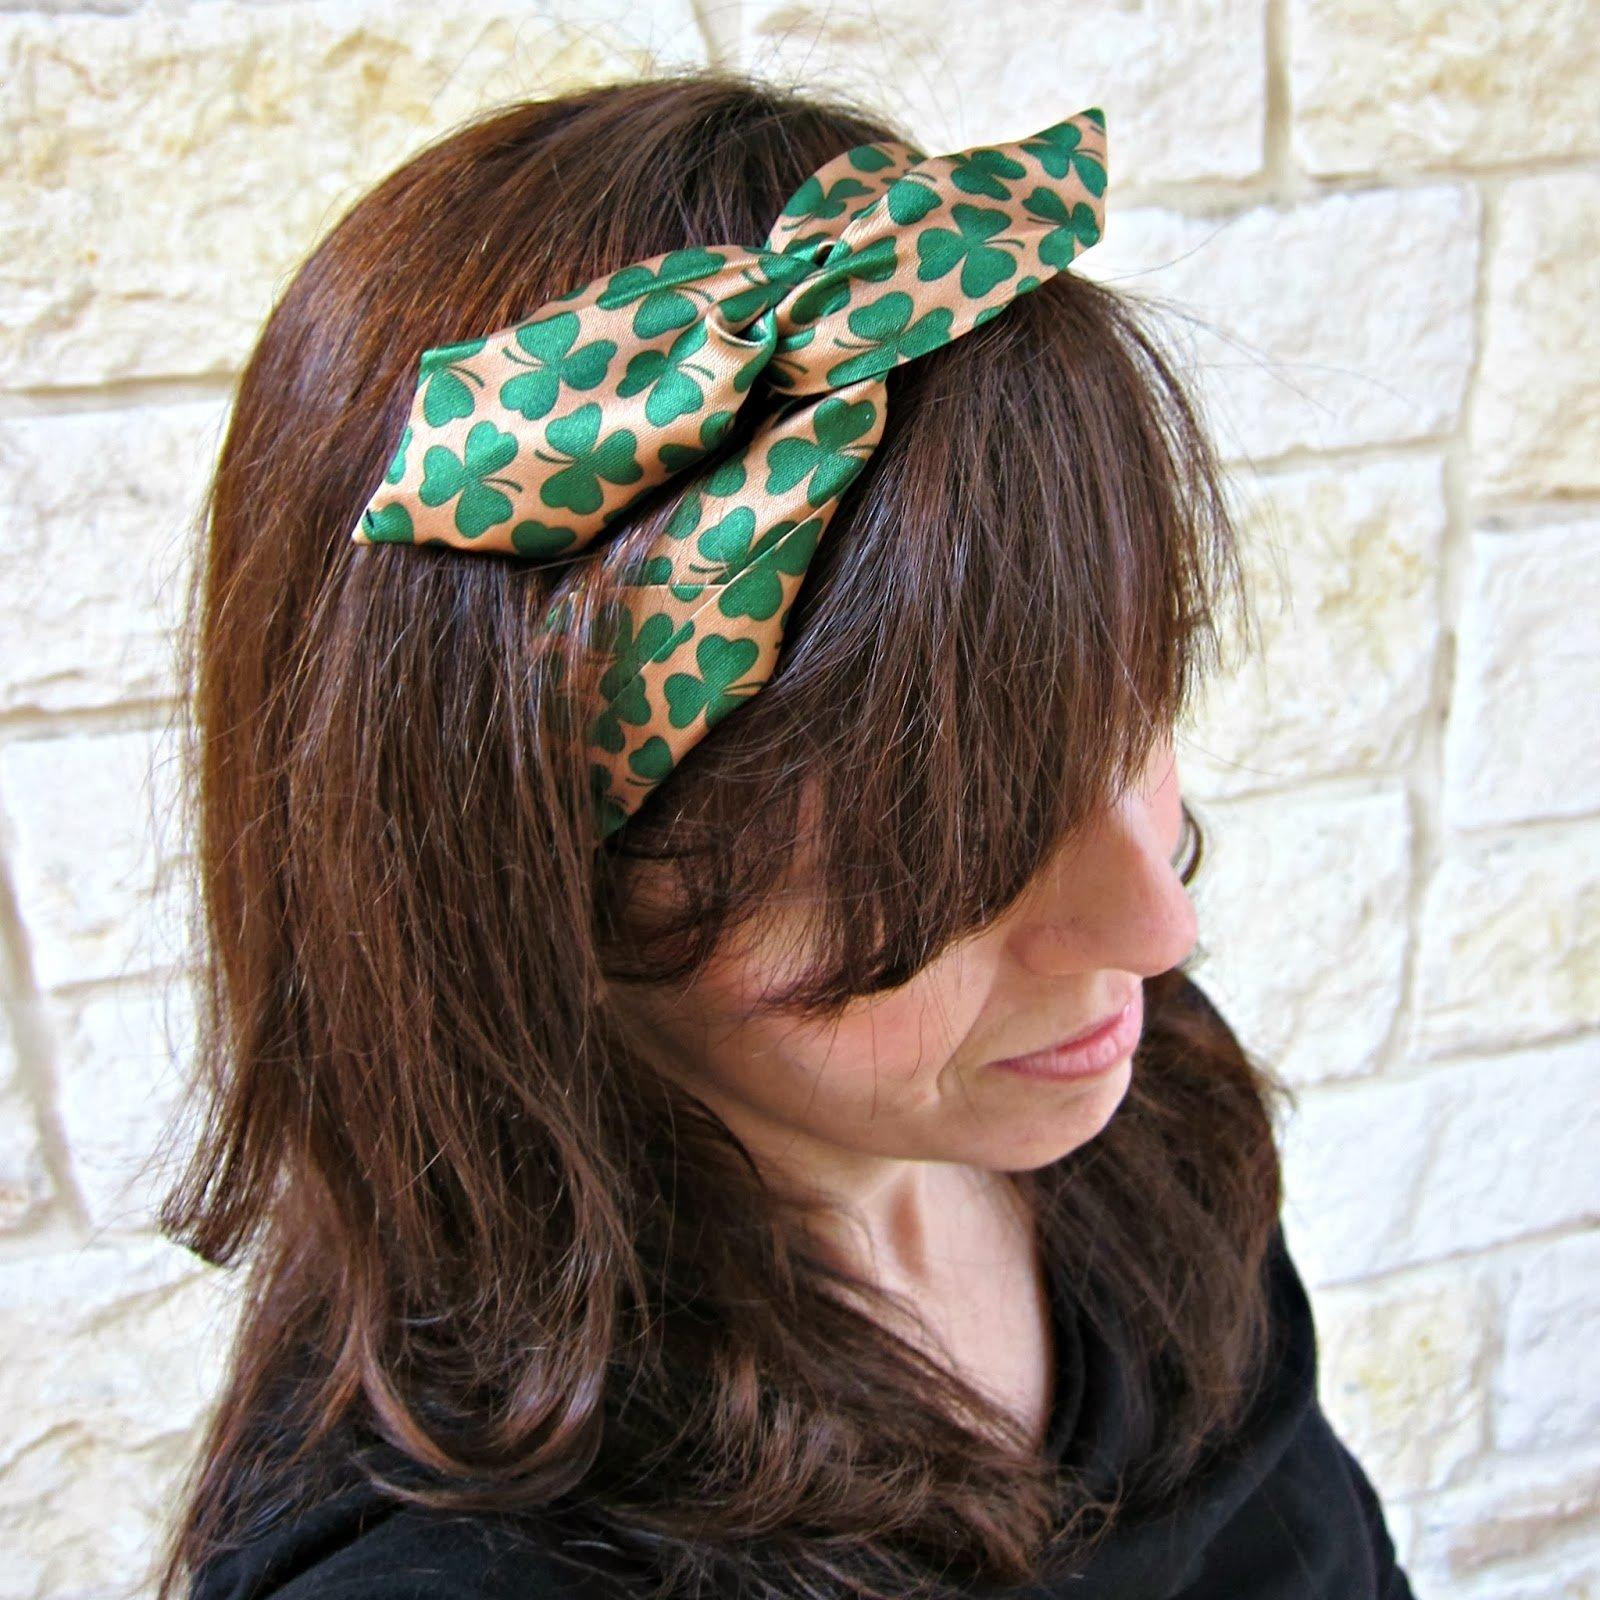 20 Stylish DIY Headbands For Warmer Winter Days